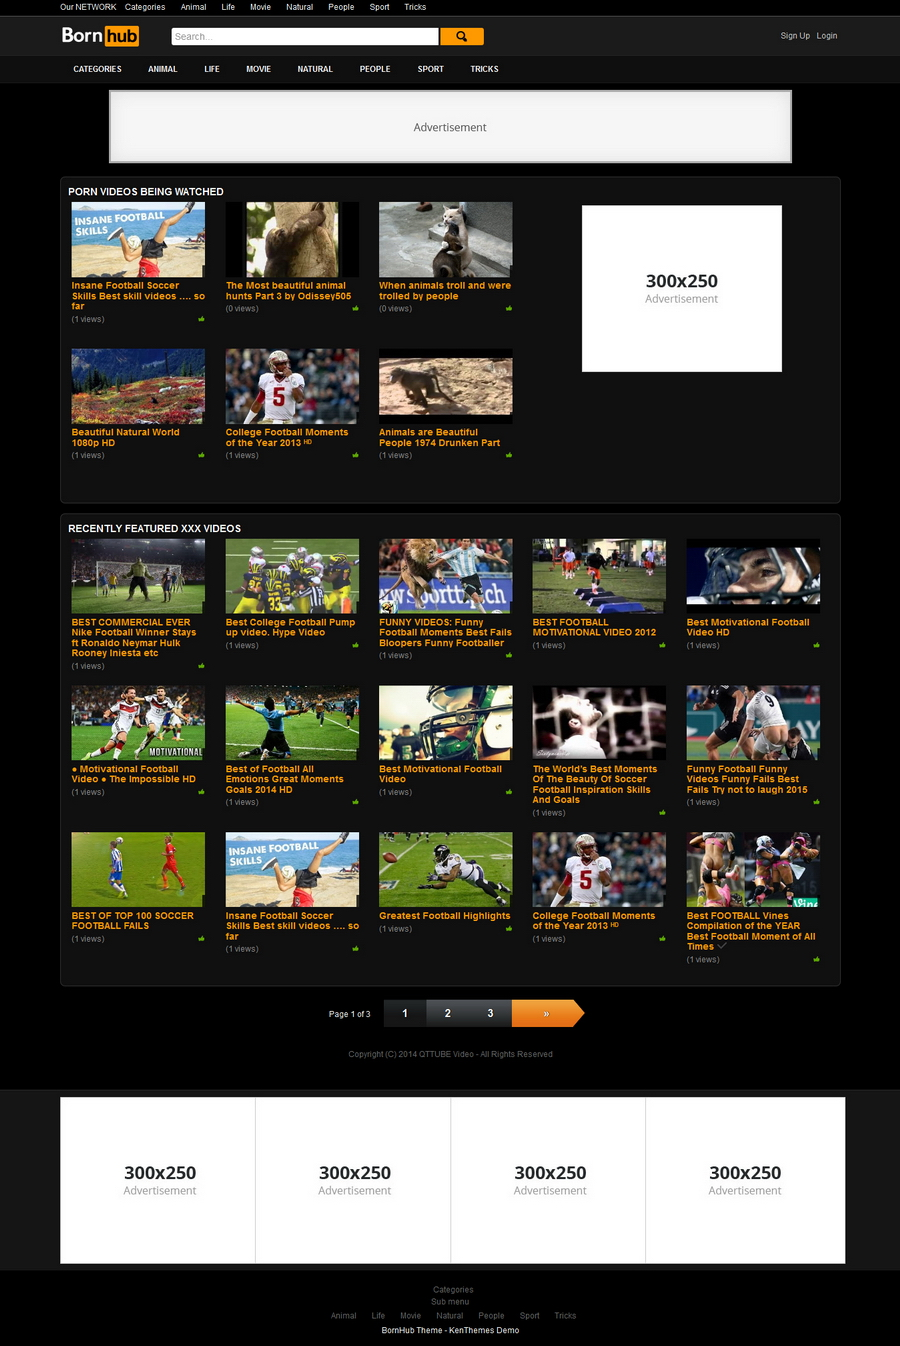 screenshot-demo kenthemes com 2015-06-23 16-00-06